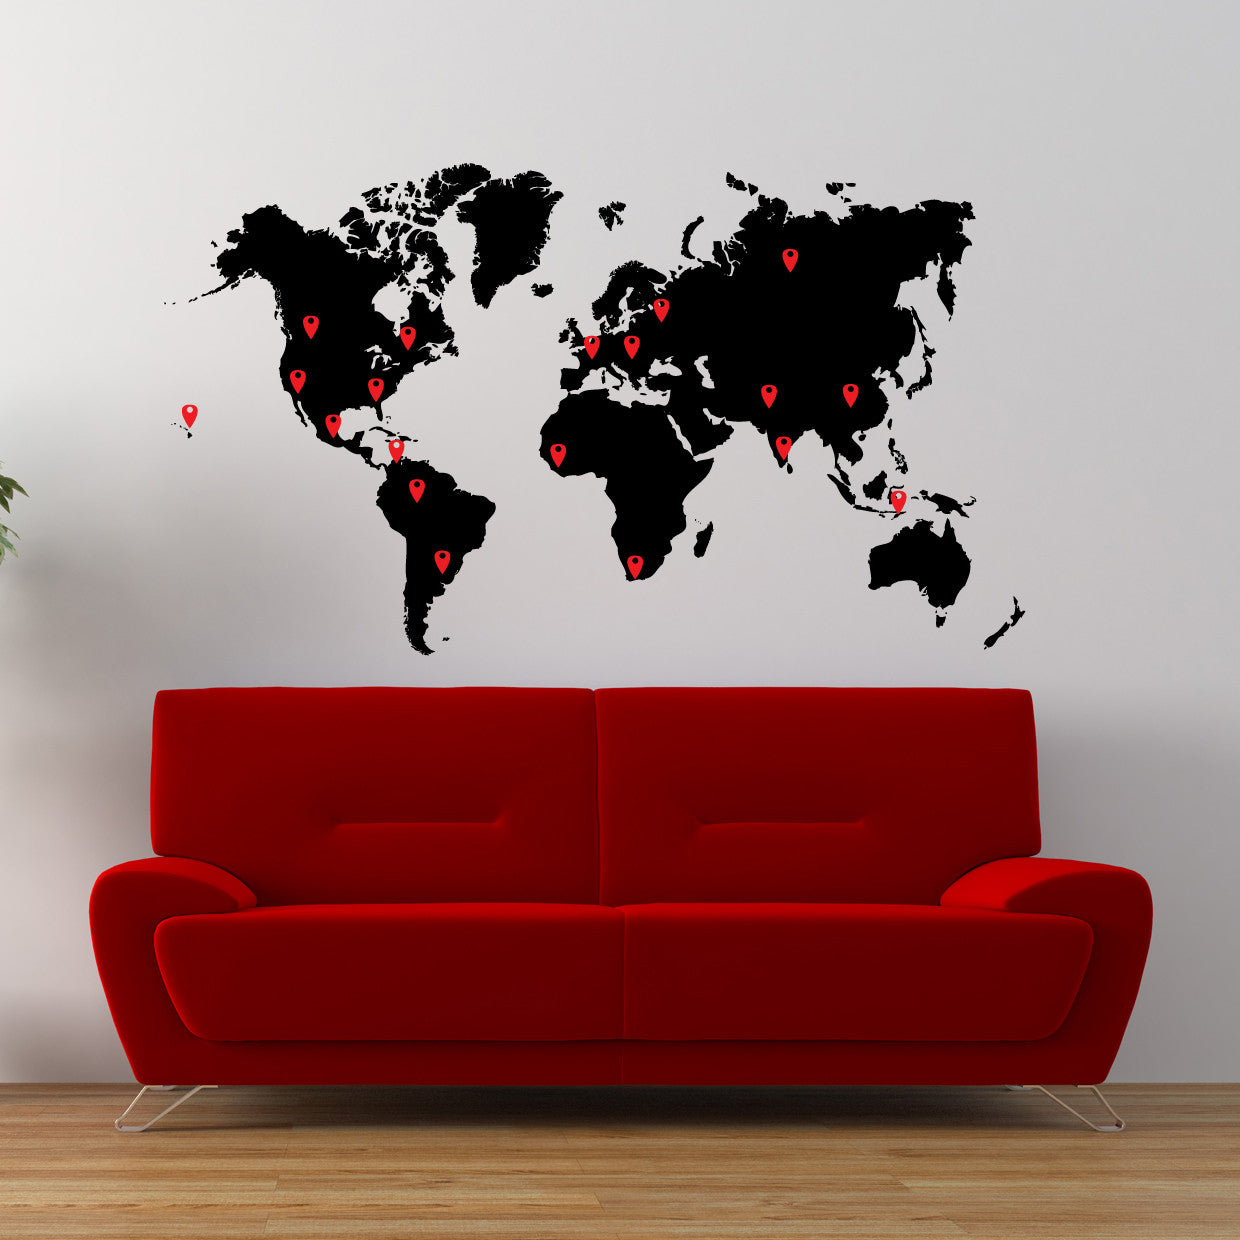 Large world map wall decal world map pin drops decal 873 removable world map pin drops decal 873 gumiabroncs